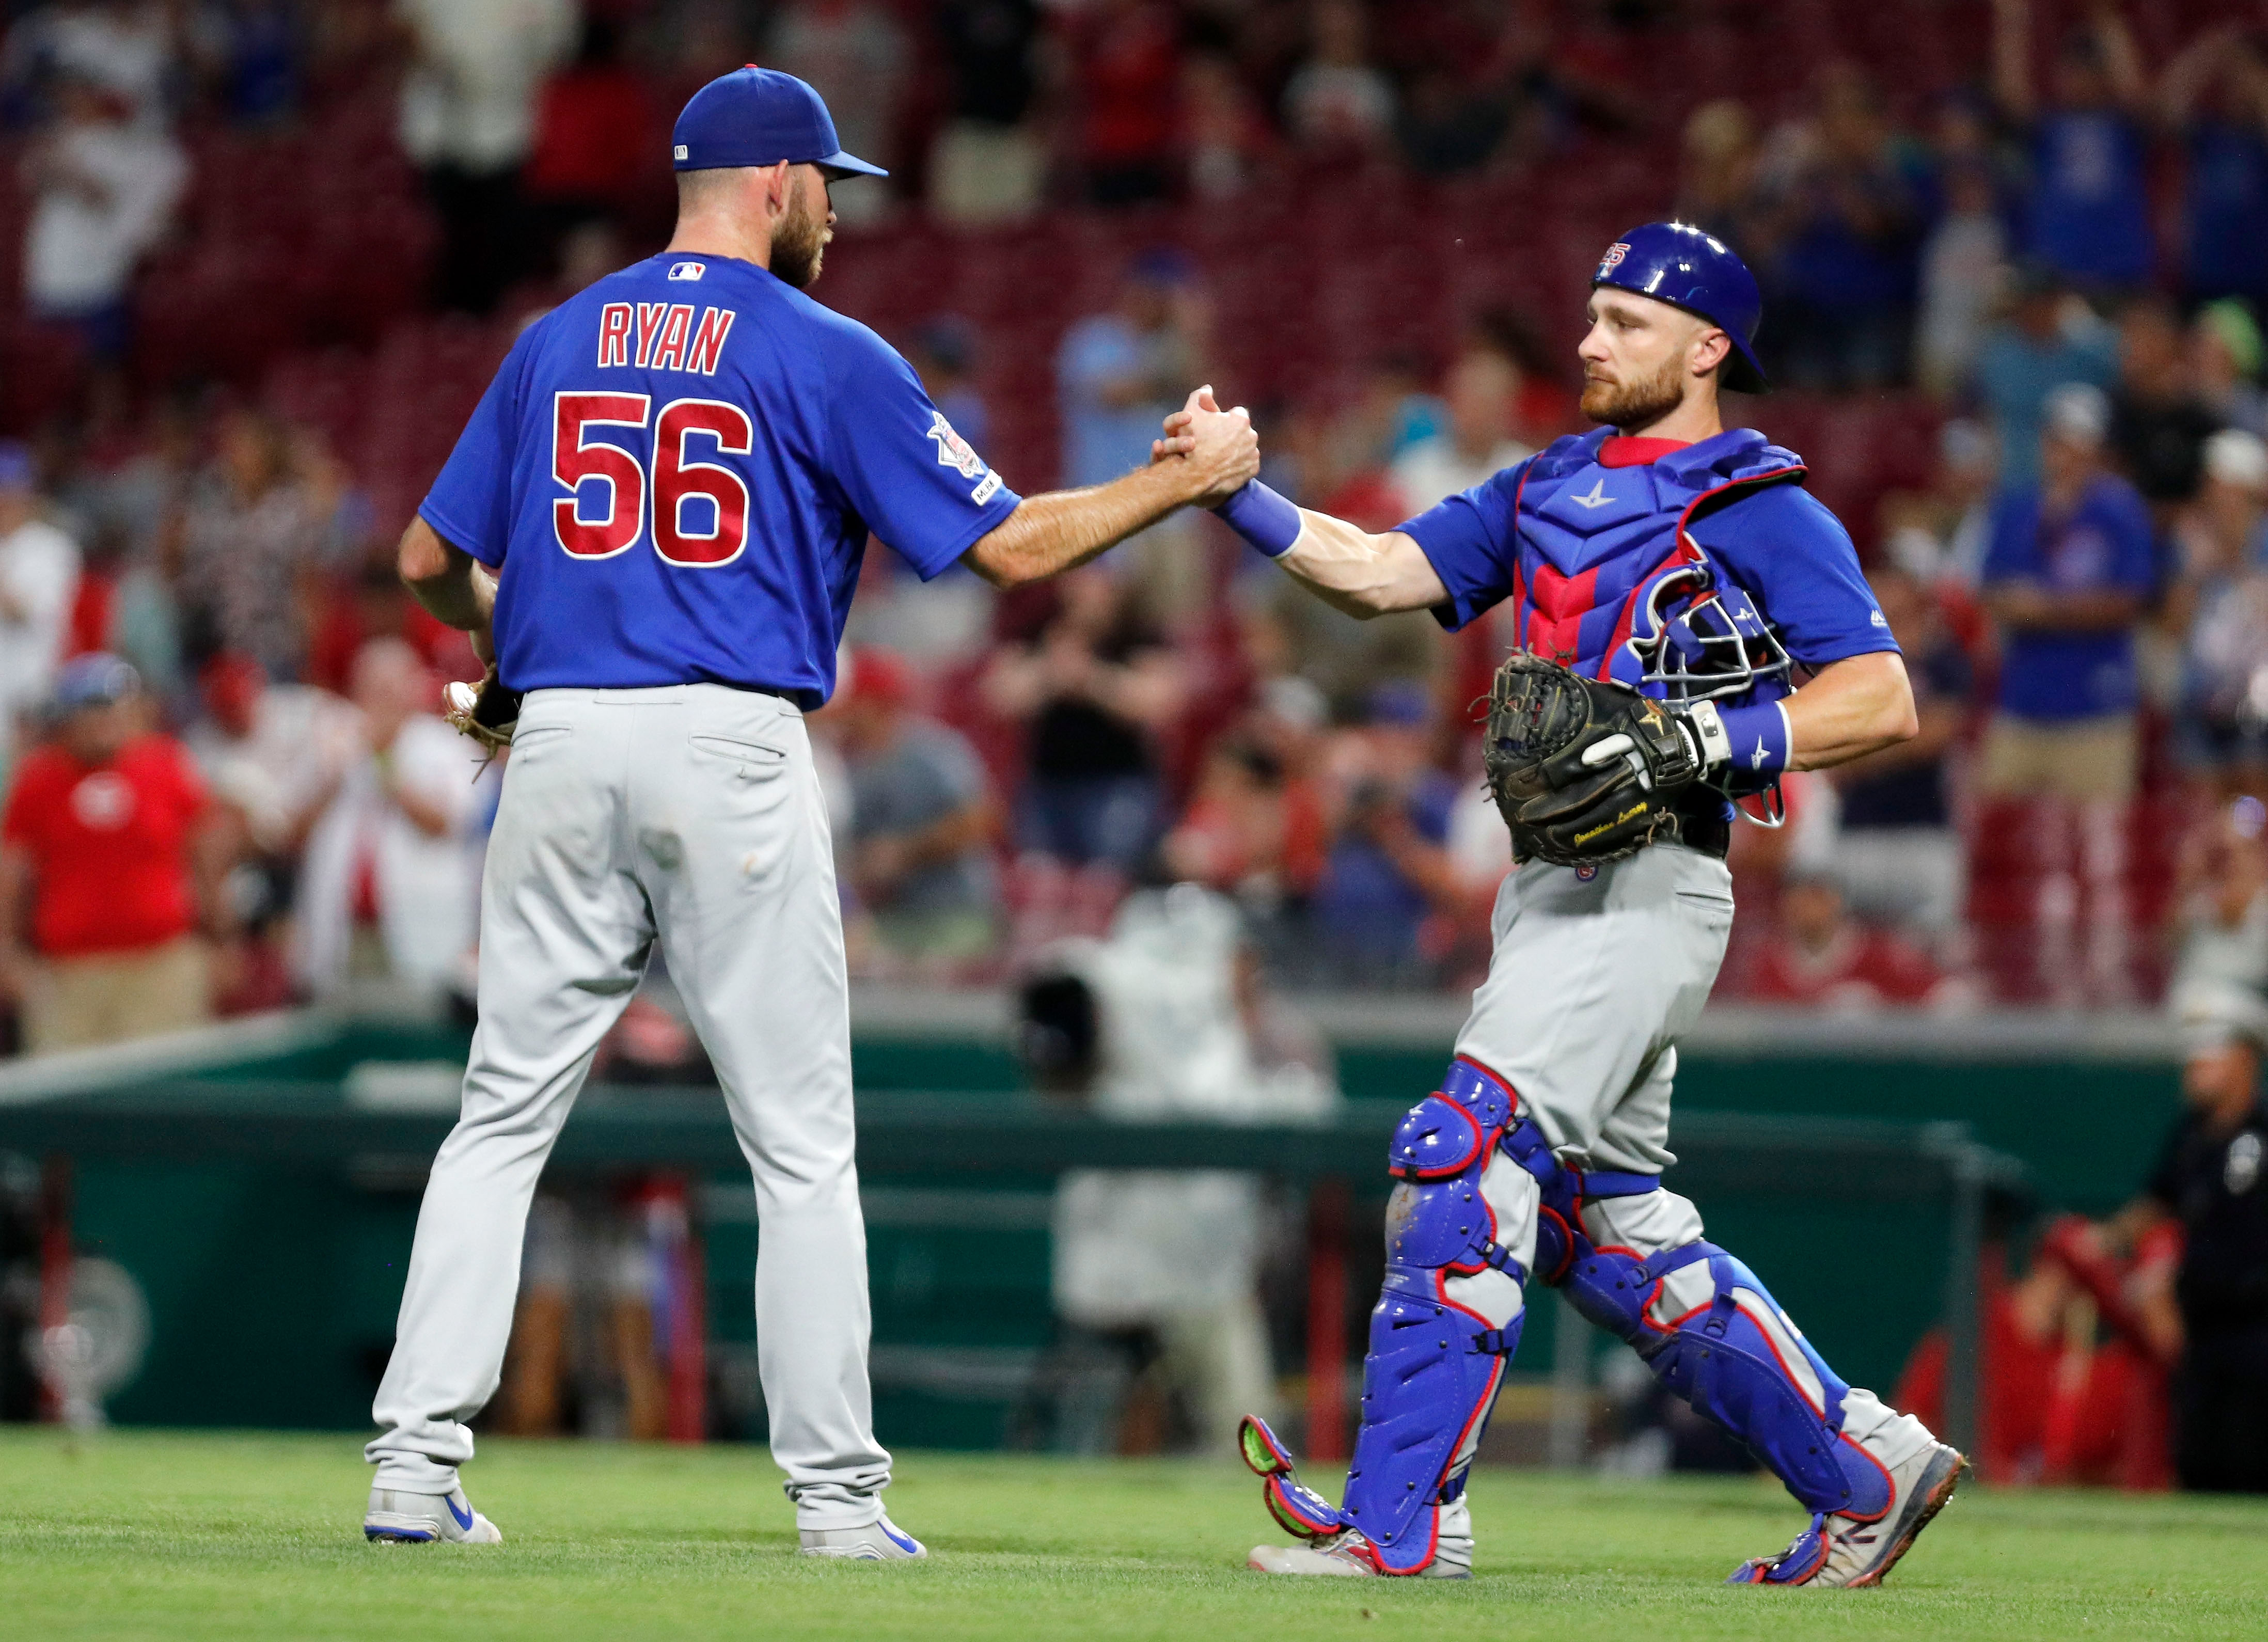 Chicago Cubs more comfortable at Wrigley Field than on the road